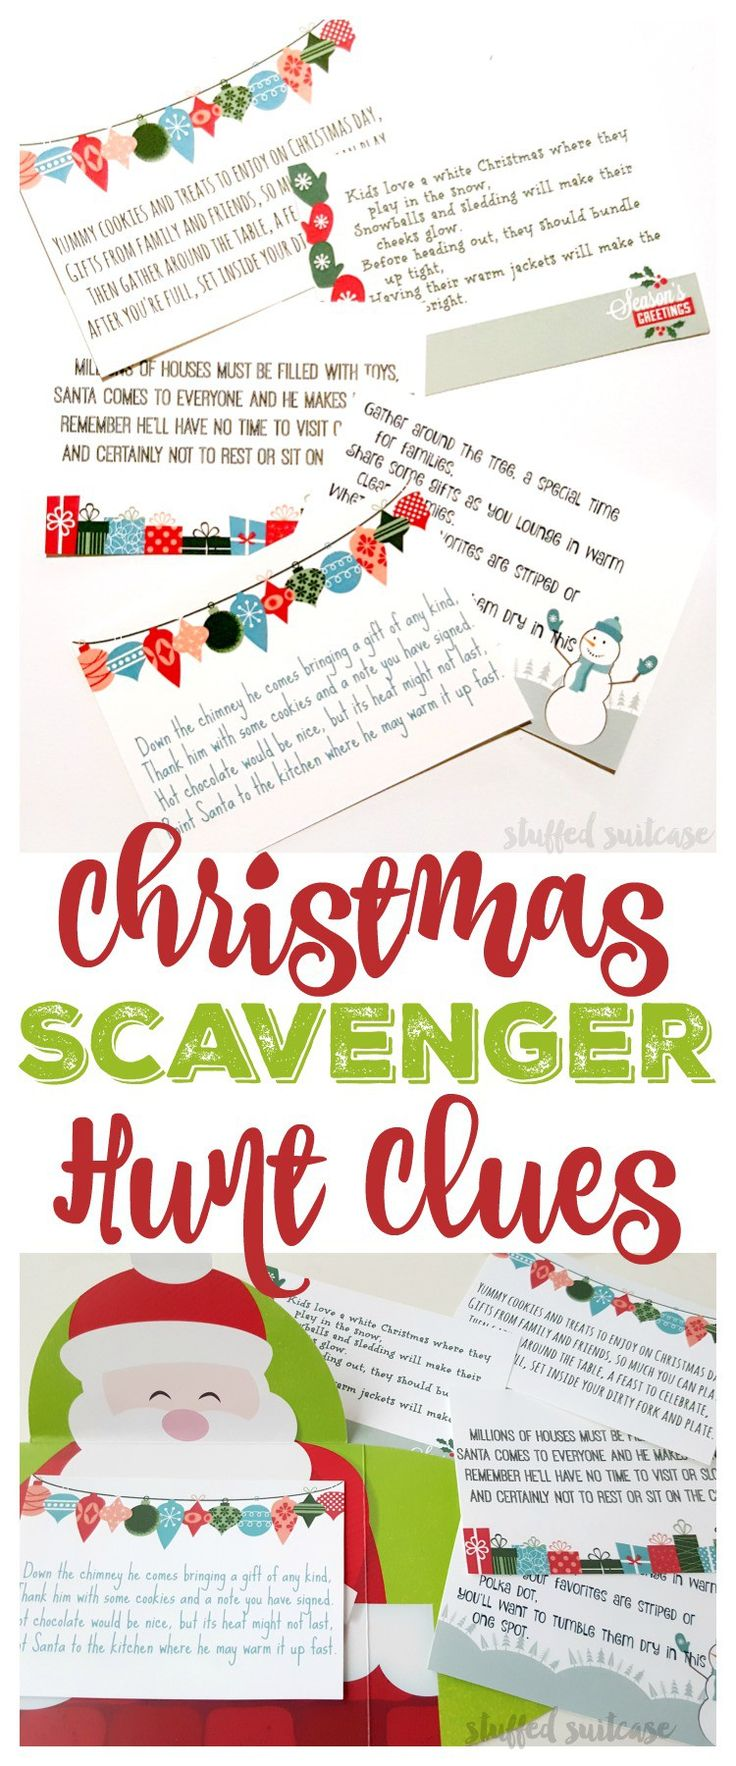 Here's the ultimate fun for Christmas morning, and a new family Christmas tradition. Place these Christmas Scavenger Hunt Riddles around the home and watch your kids follow the clues and hunt for their gift!